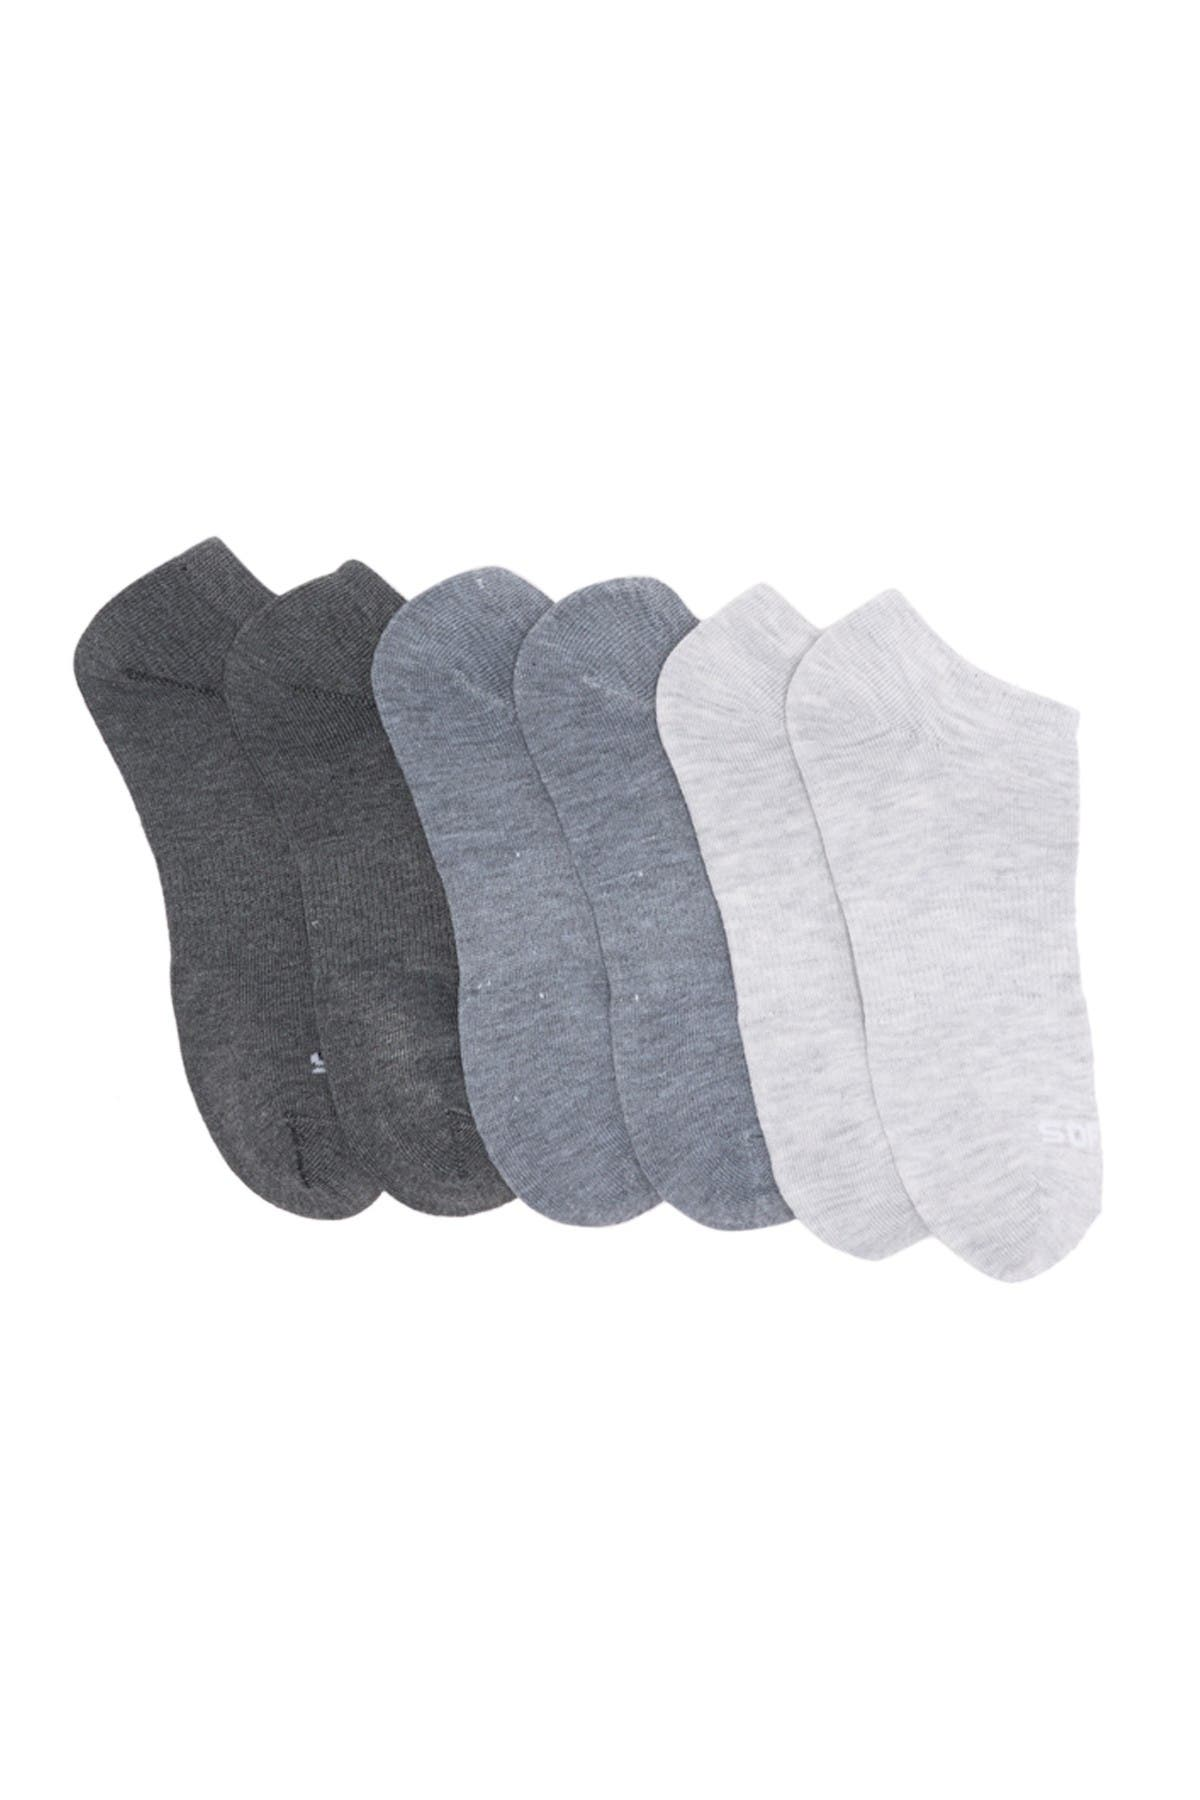 Image of Sof Sole 3 Shades Of Grey Low Cut Socks - Pack of 6